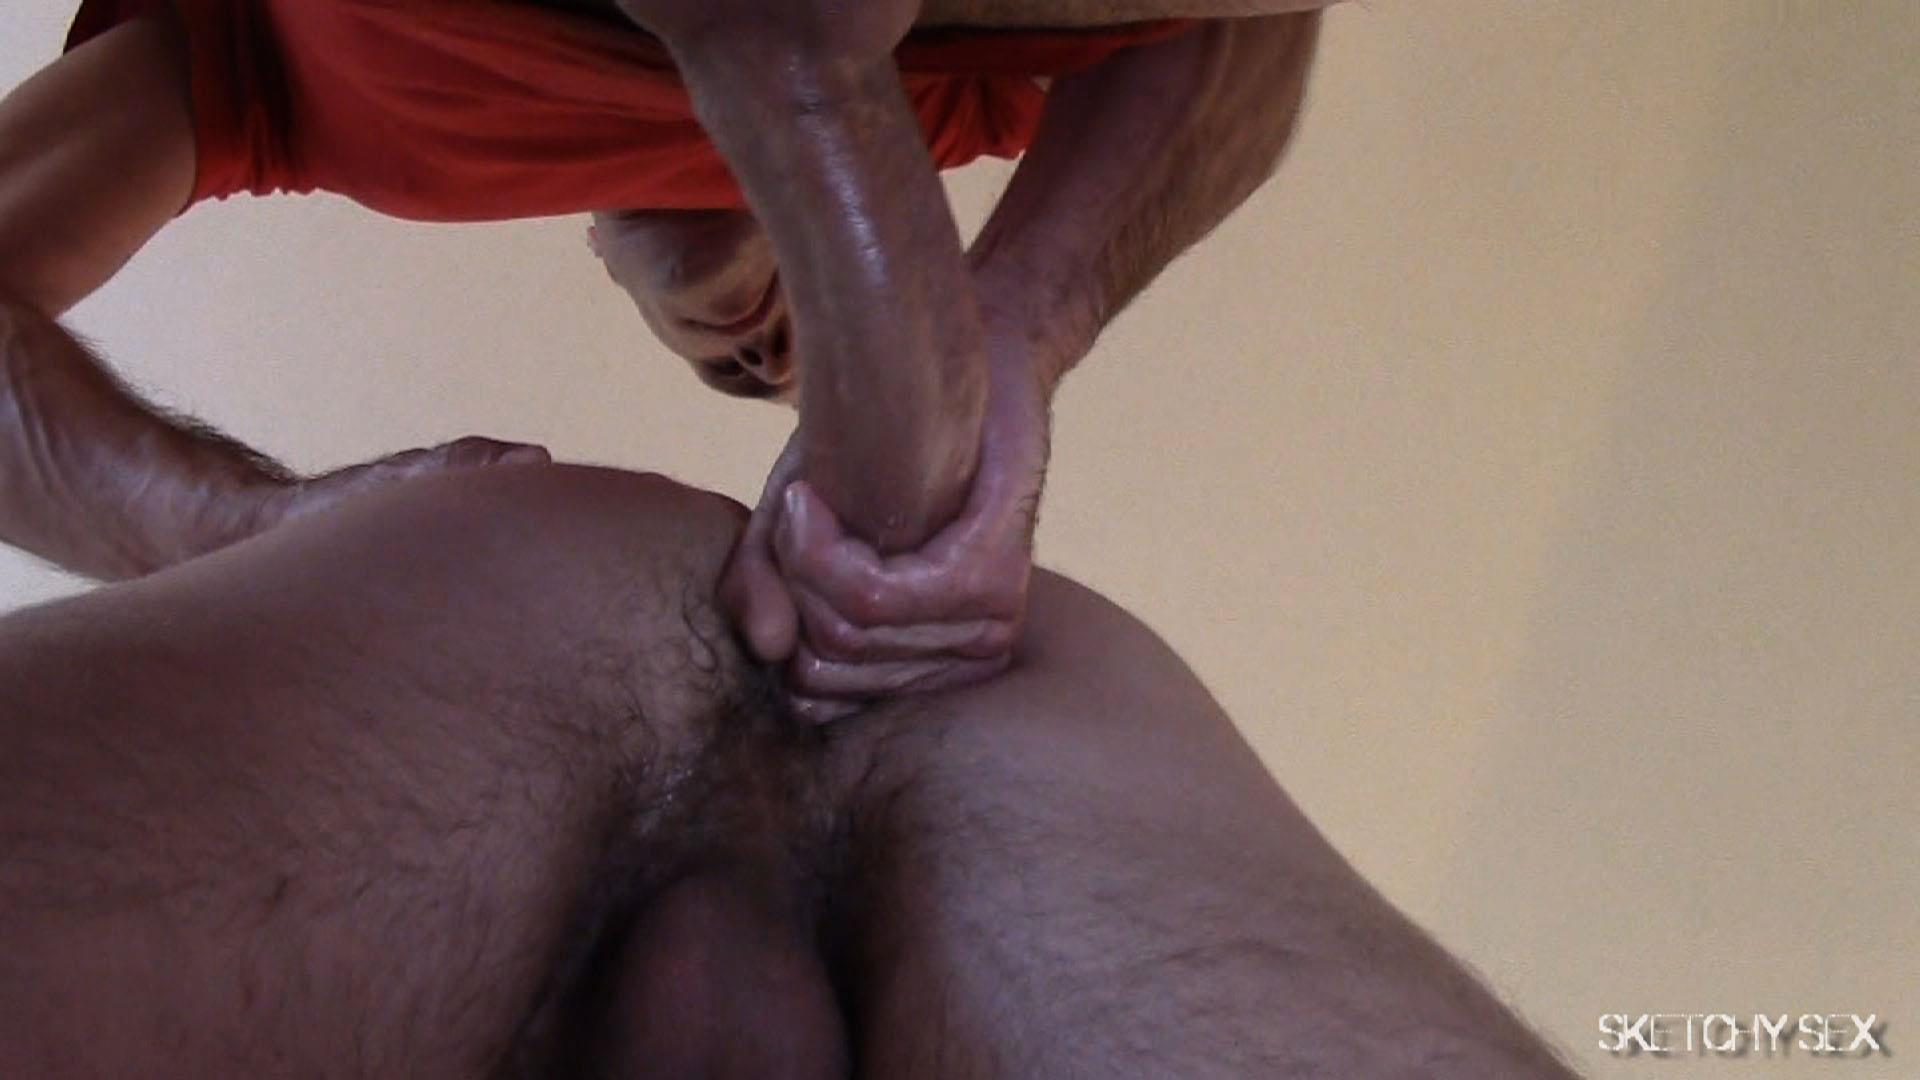 "Sketchy-Sex-Nate-Getting-Fucked-Bareback-By-A-10-Inch-Craigslist-Cock-Amateur-Gay-Porn-08 Taking A 10"" Craigslist Cock Bareback While The Roommate Watches"